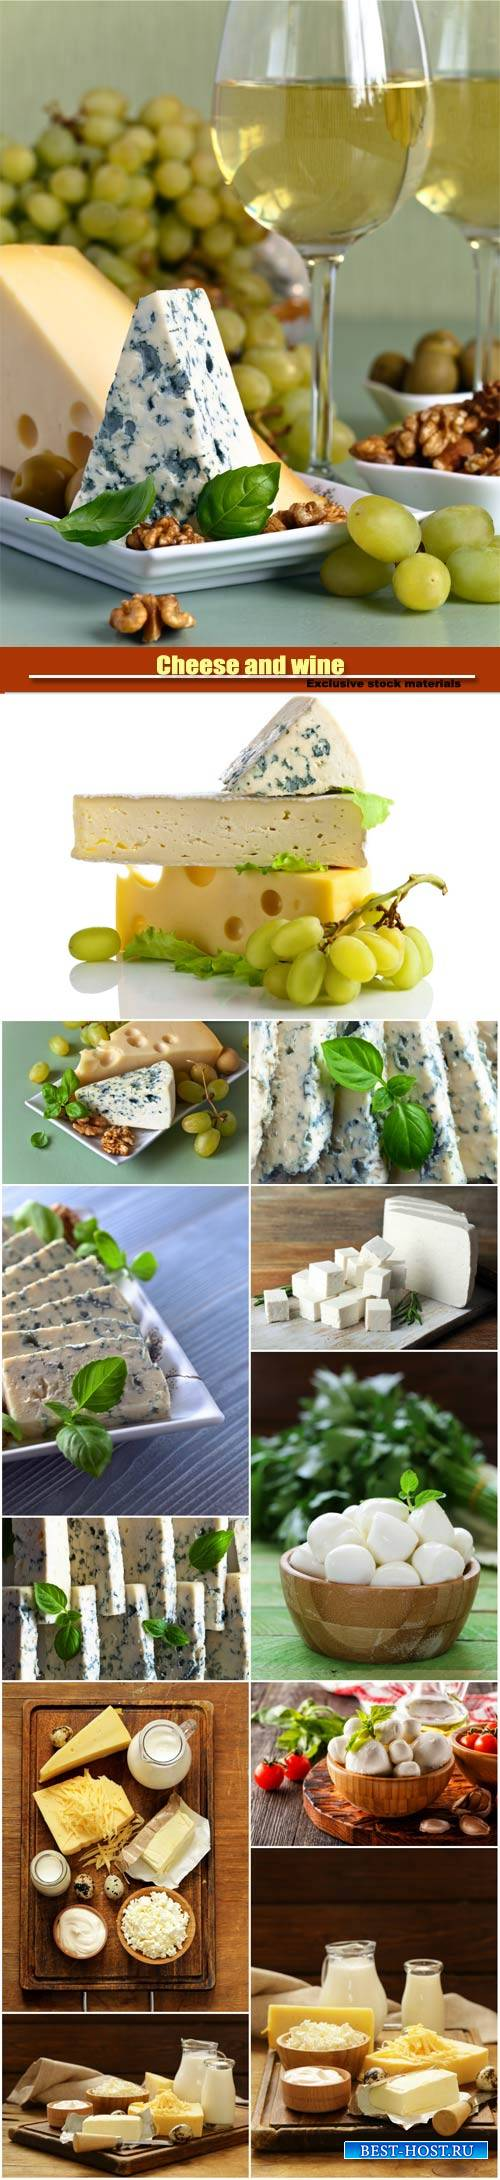 Cheese and wine, mozzarella cheese, gorgonzola cheese, tomatoes, basil, gar ...